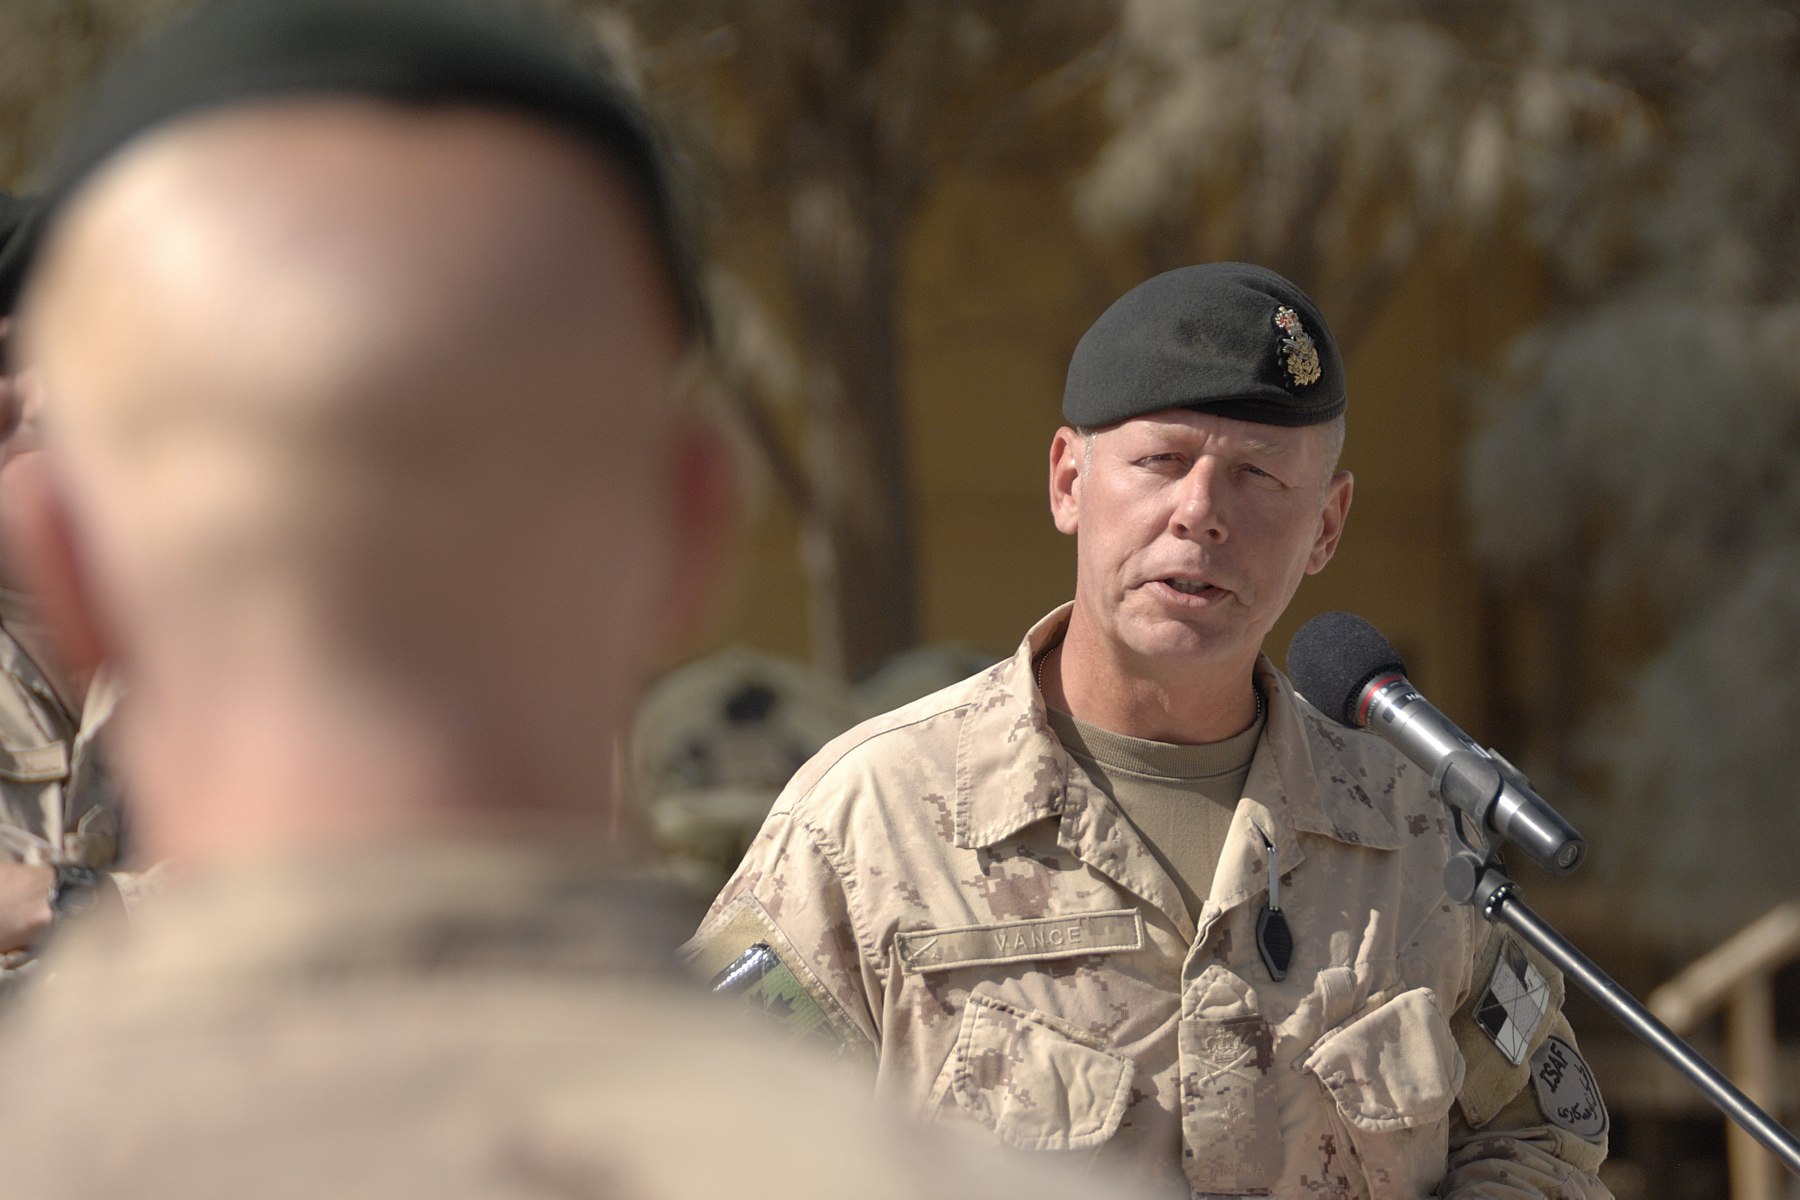 LGen Jonathan Vance, then a Brigadier General, delivers a speech while serving as Kandahar operation commander during Canada's participation in the Afghanistan conflict. (DND)